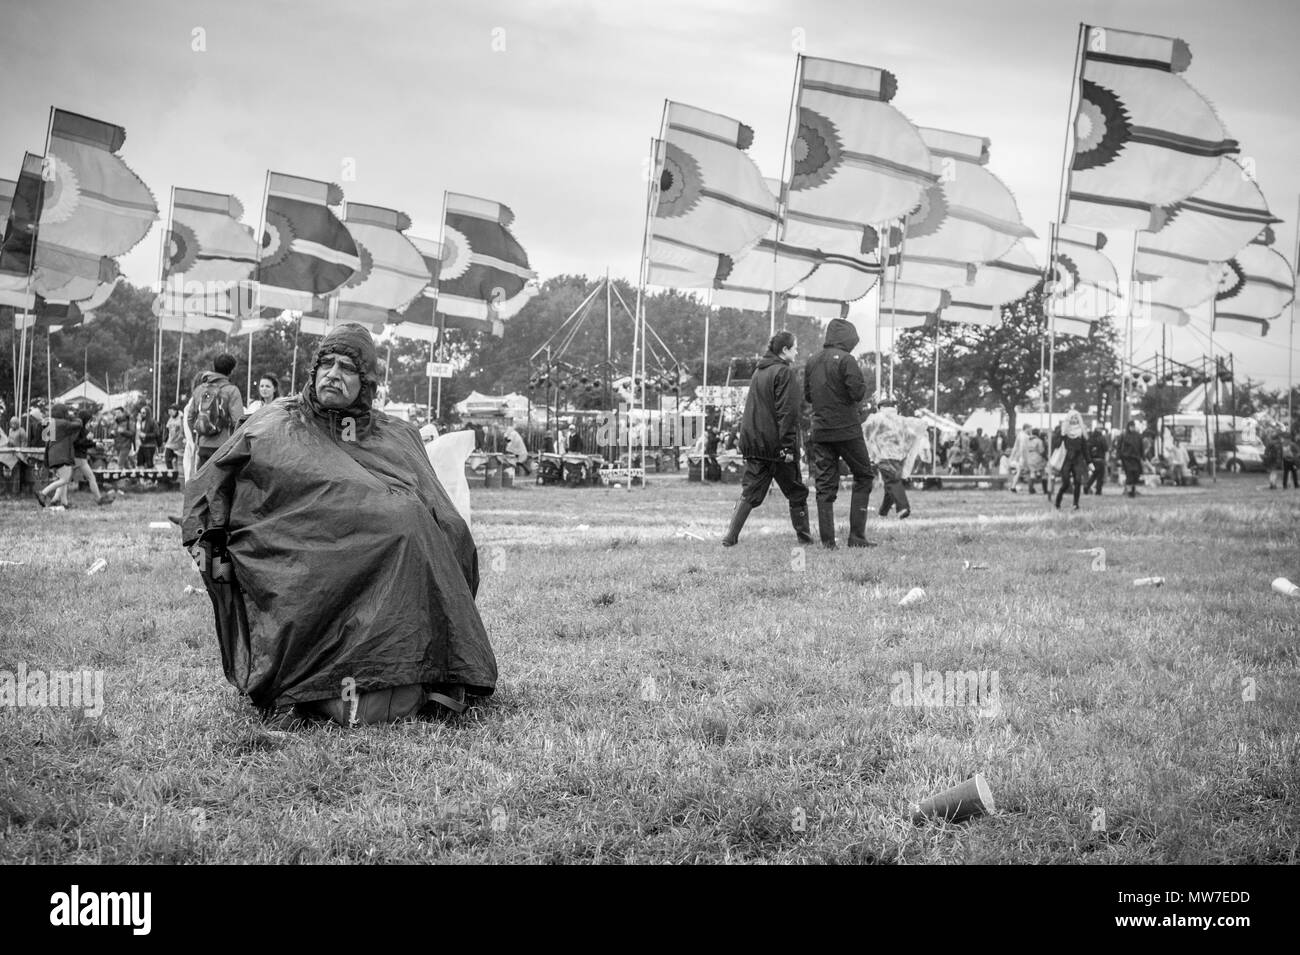 A festival goer watches a band at the Glastonbury Festival 2015 - Stock Image